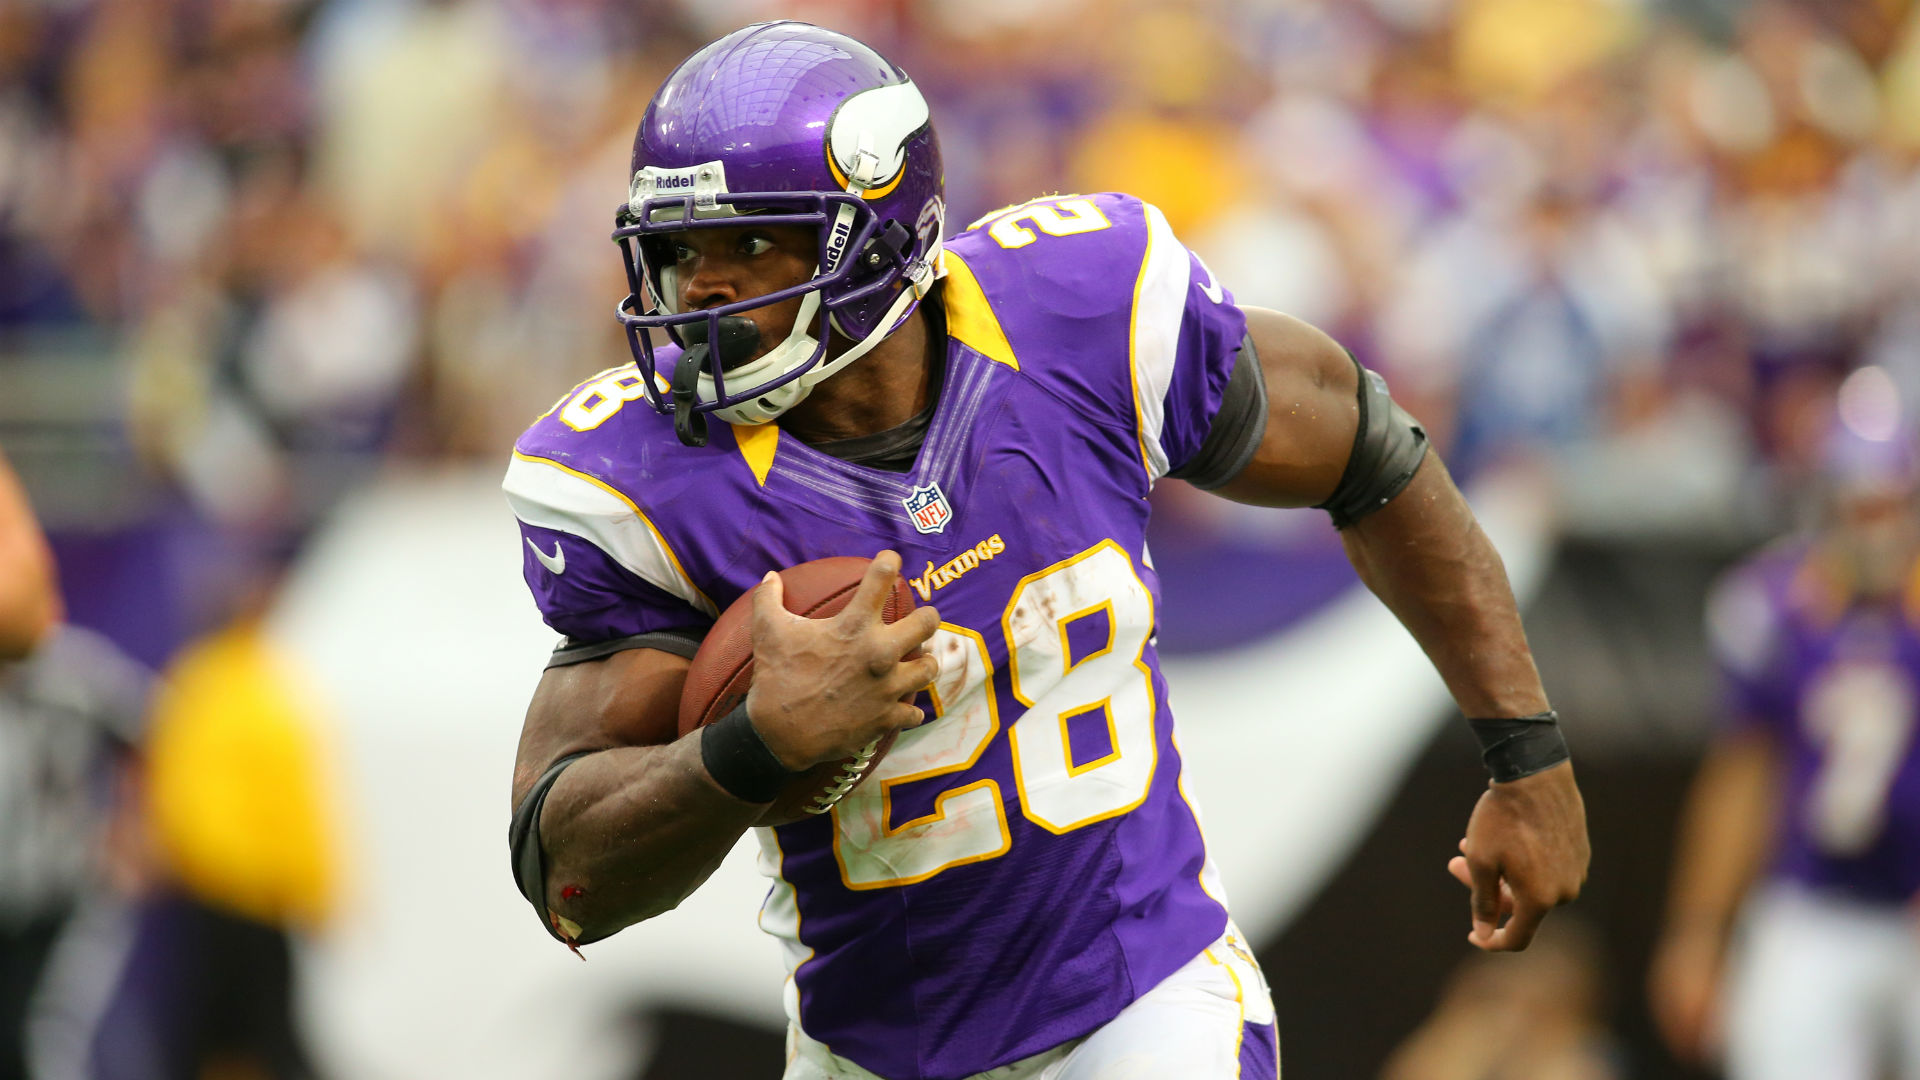 Adrian peterson believes he can play at 38 break rushing record nfl